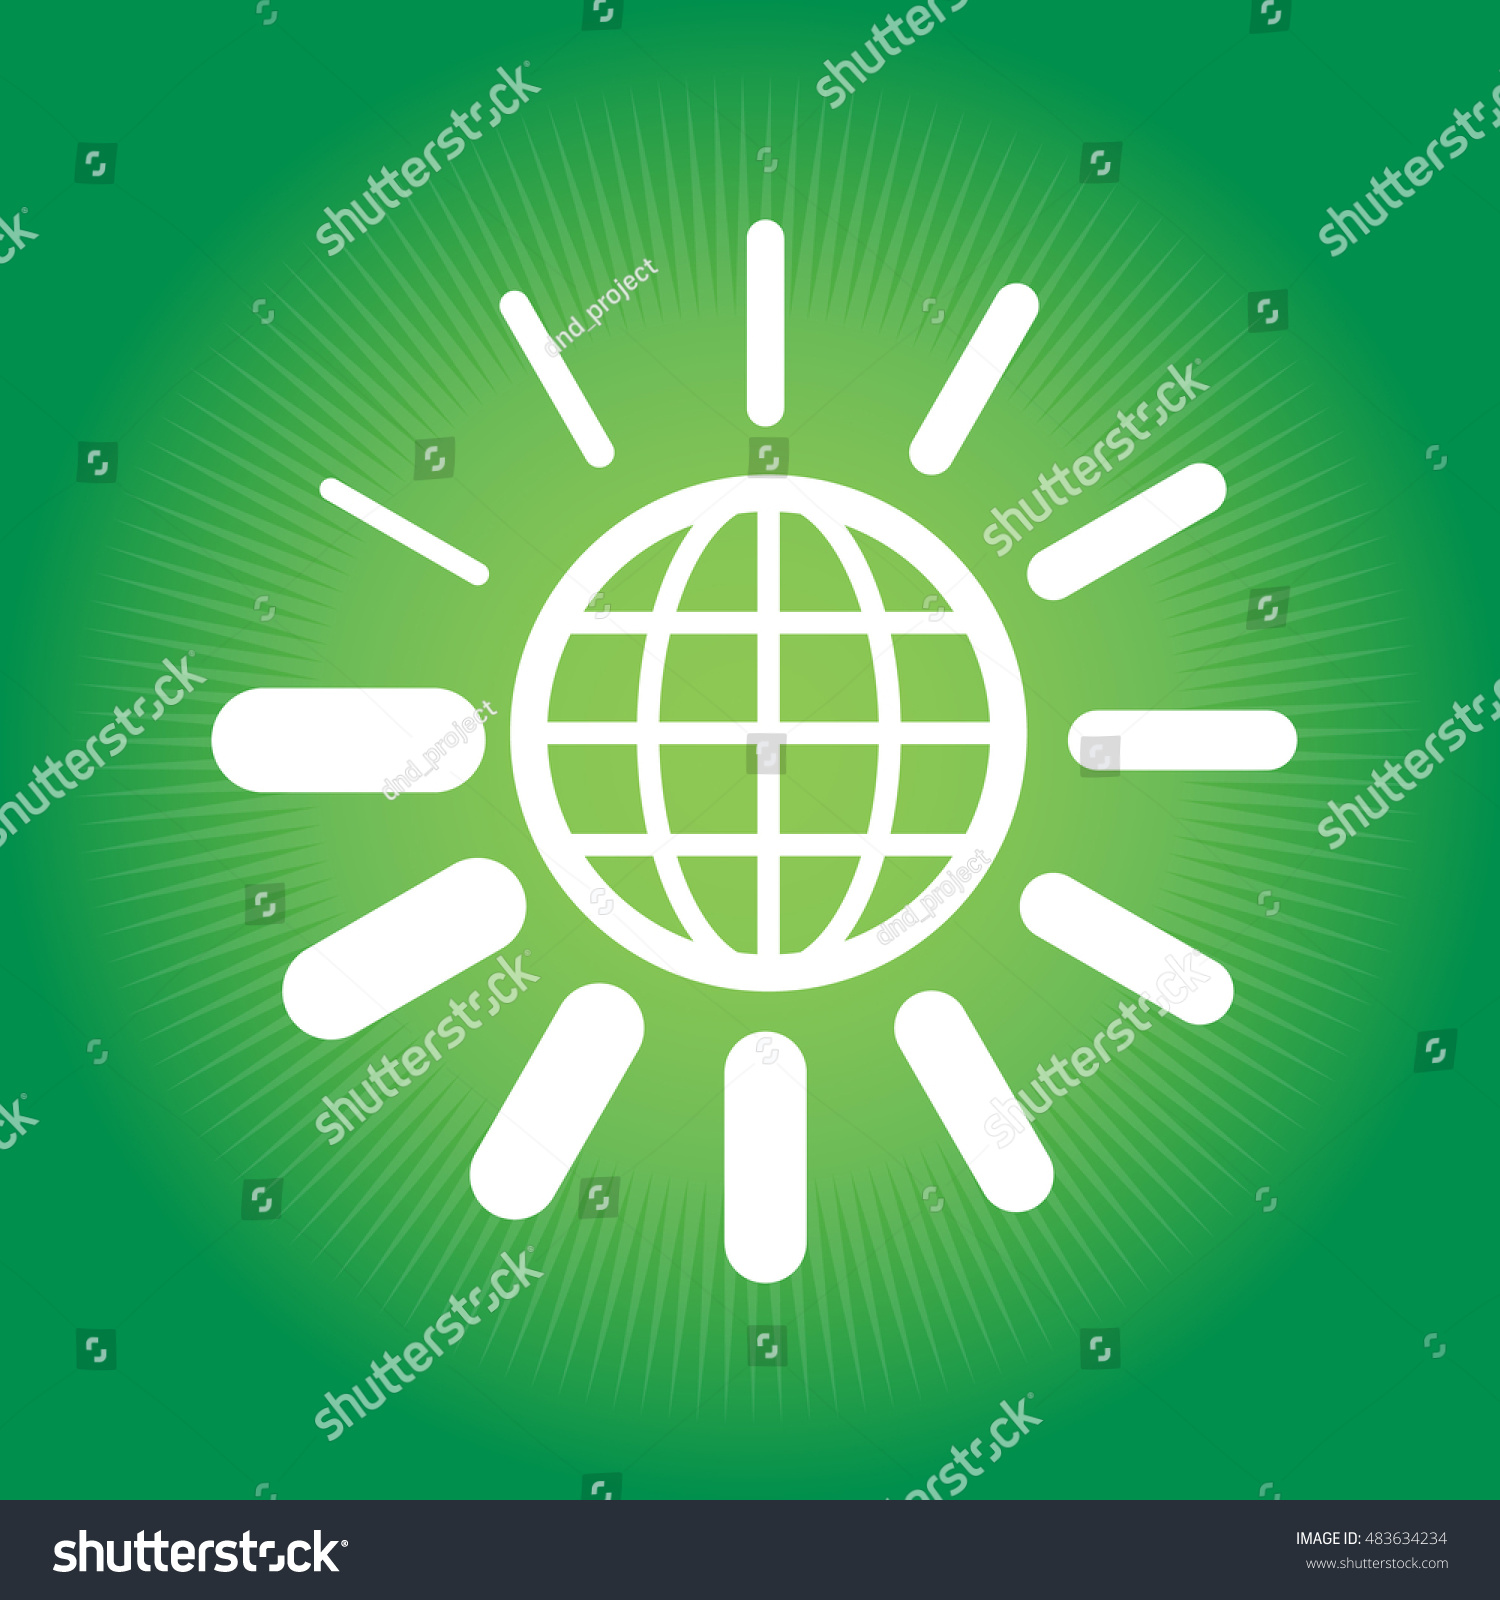 Globe loading symbol stock vector 483634234 shutterstock globe and loading symbol biocorpaavc Image collections